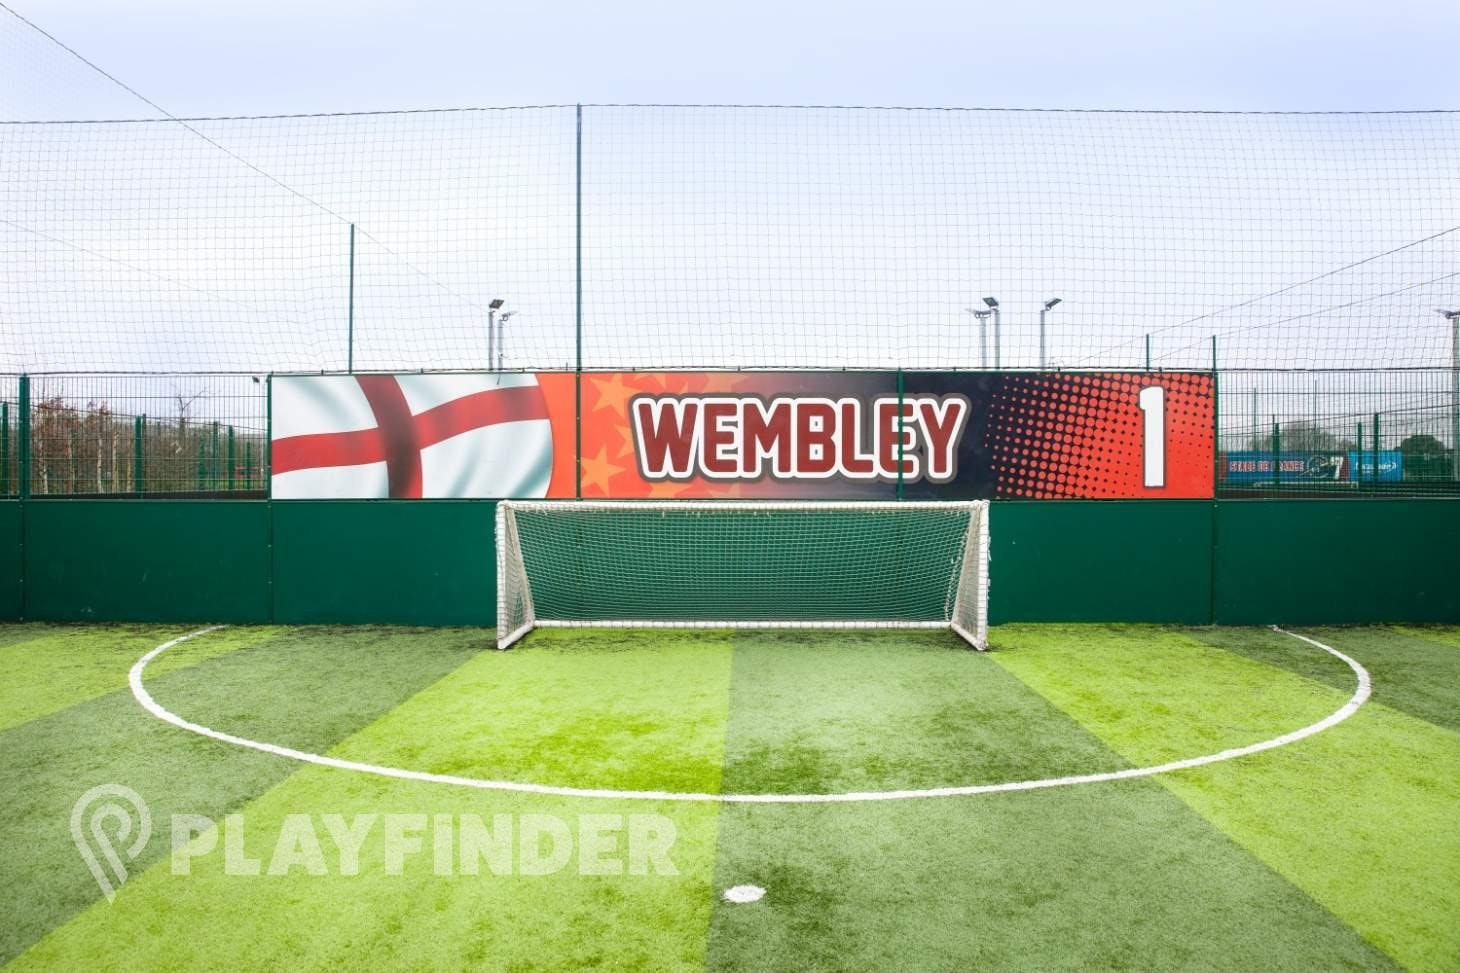 Goals Teeside 5 a side | 3G Astroturf football pitch